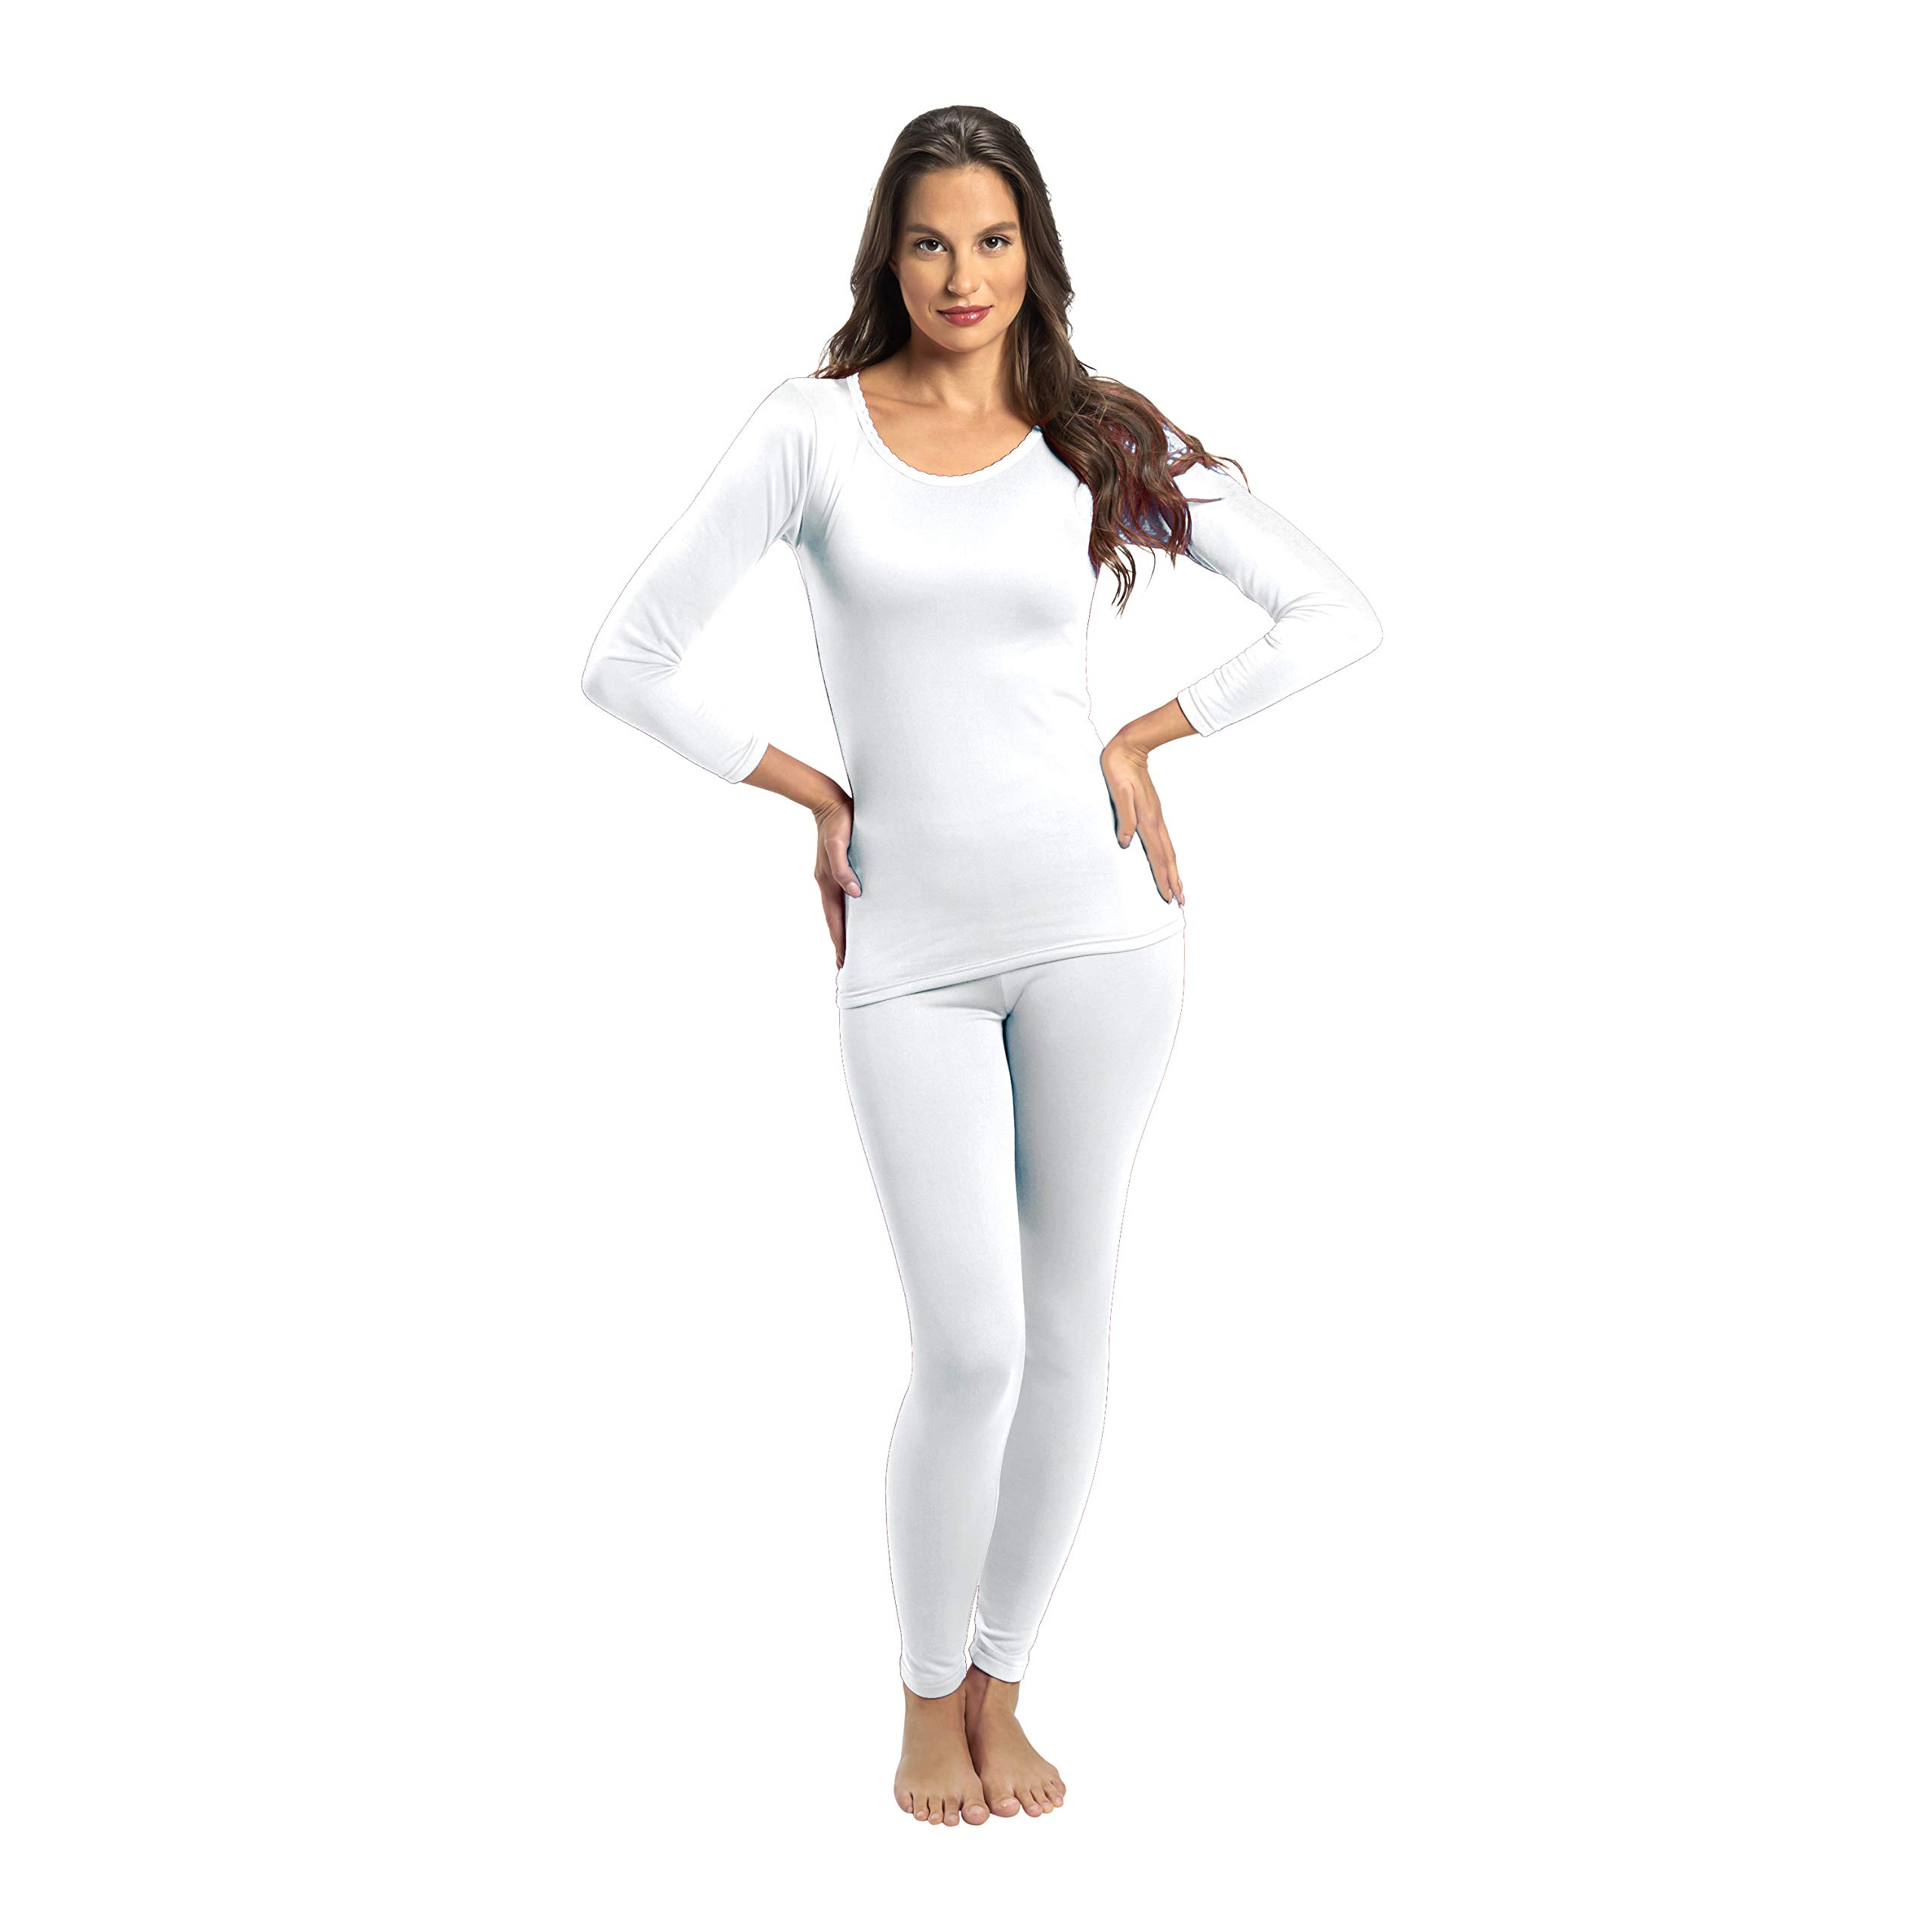 Rocky Thermal Underwear for Women Fleece Lined Thermals Women's Base Layer Long John Set White by Rocky